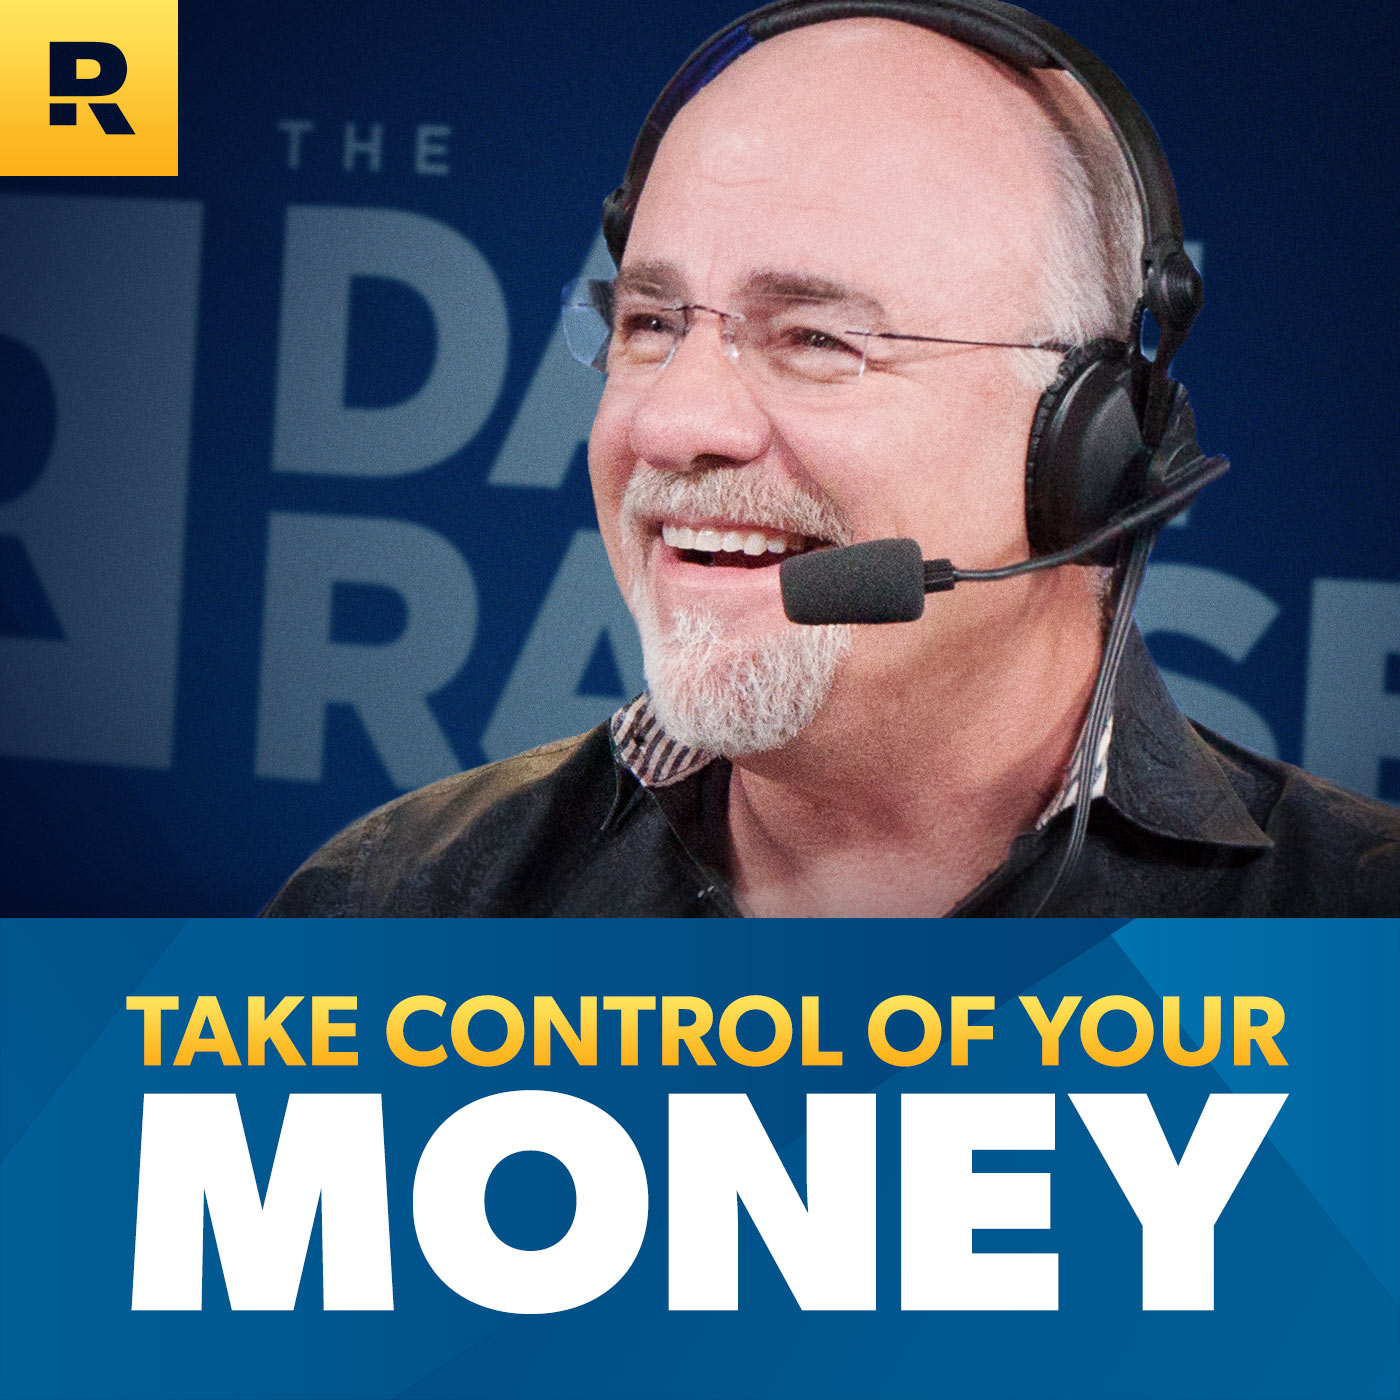 The Dave Ramsey Show